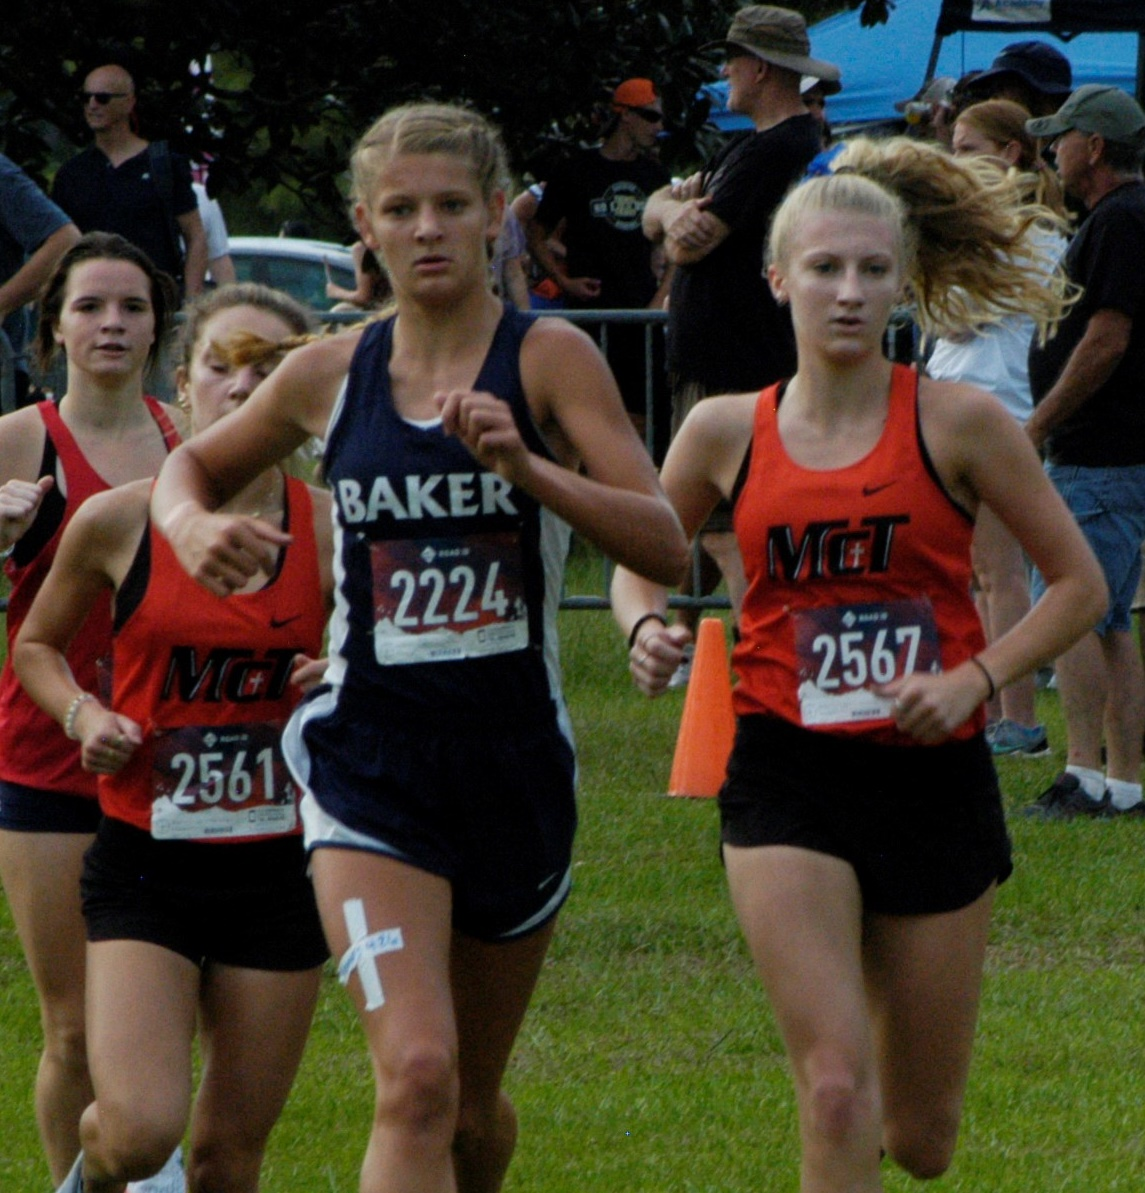 Mac Conwell & Lindsey Baxter Claim Victories at Mobile Challenge of Champions